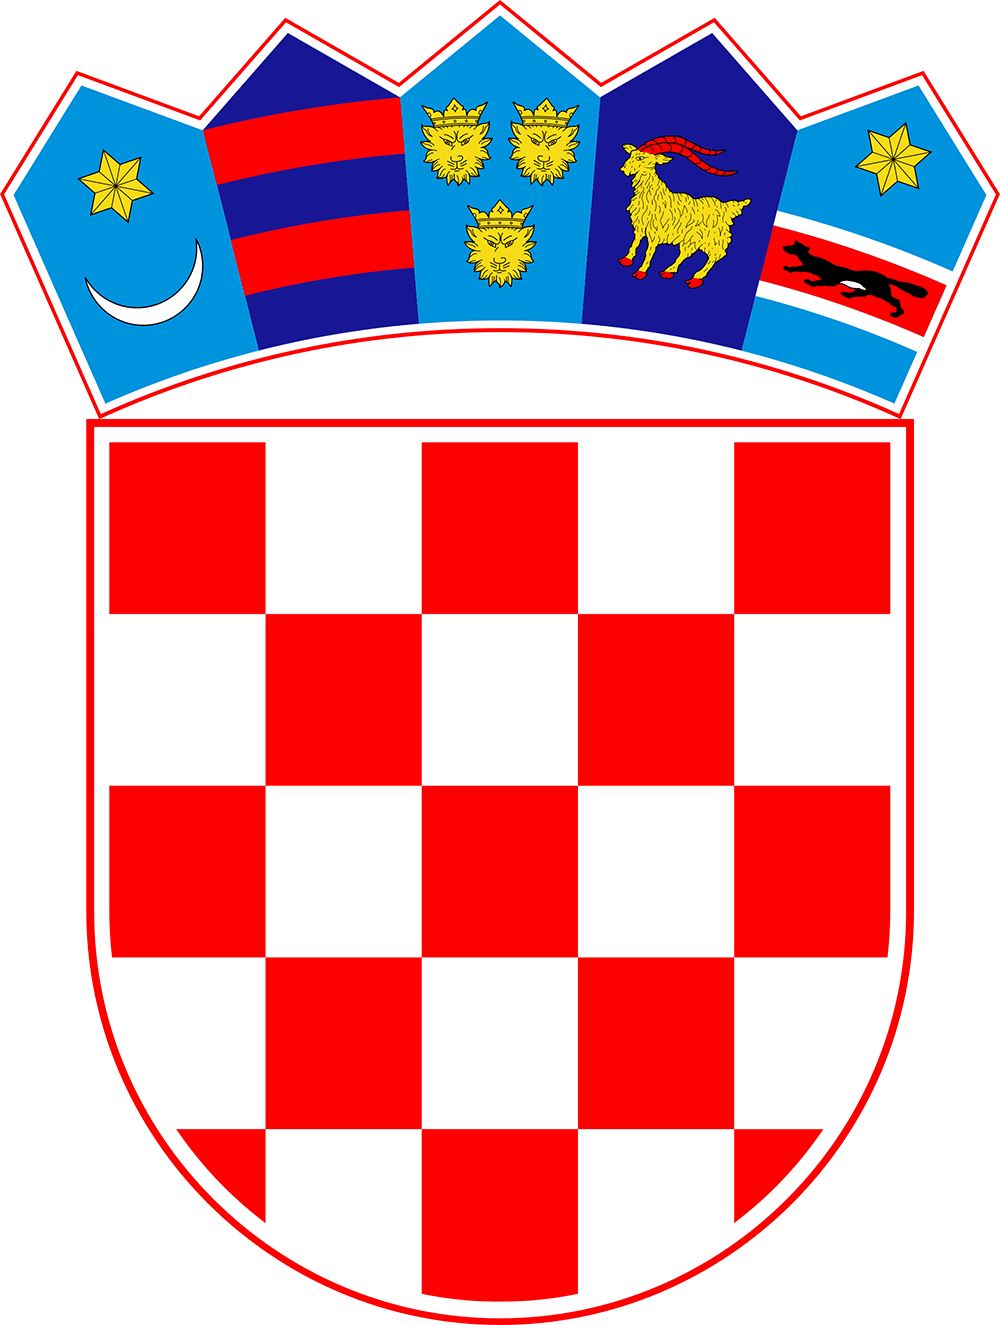 Croatian Flags (Croatia) from The World Flag Database